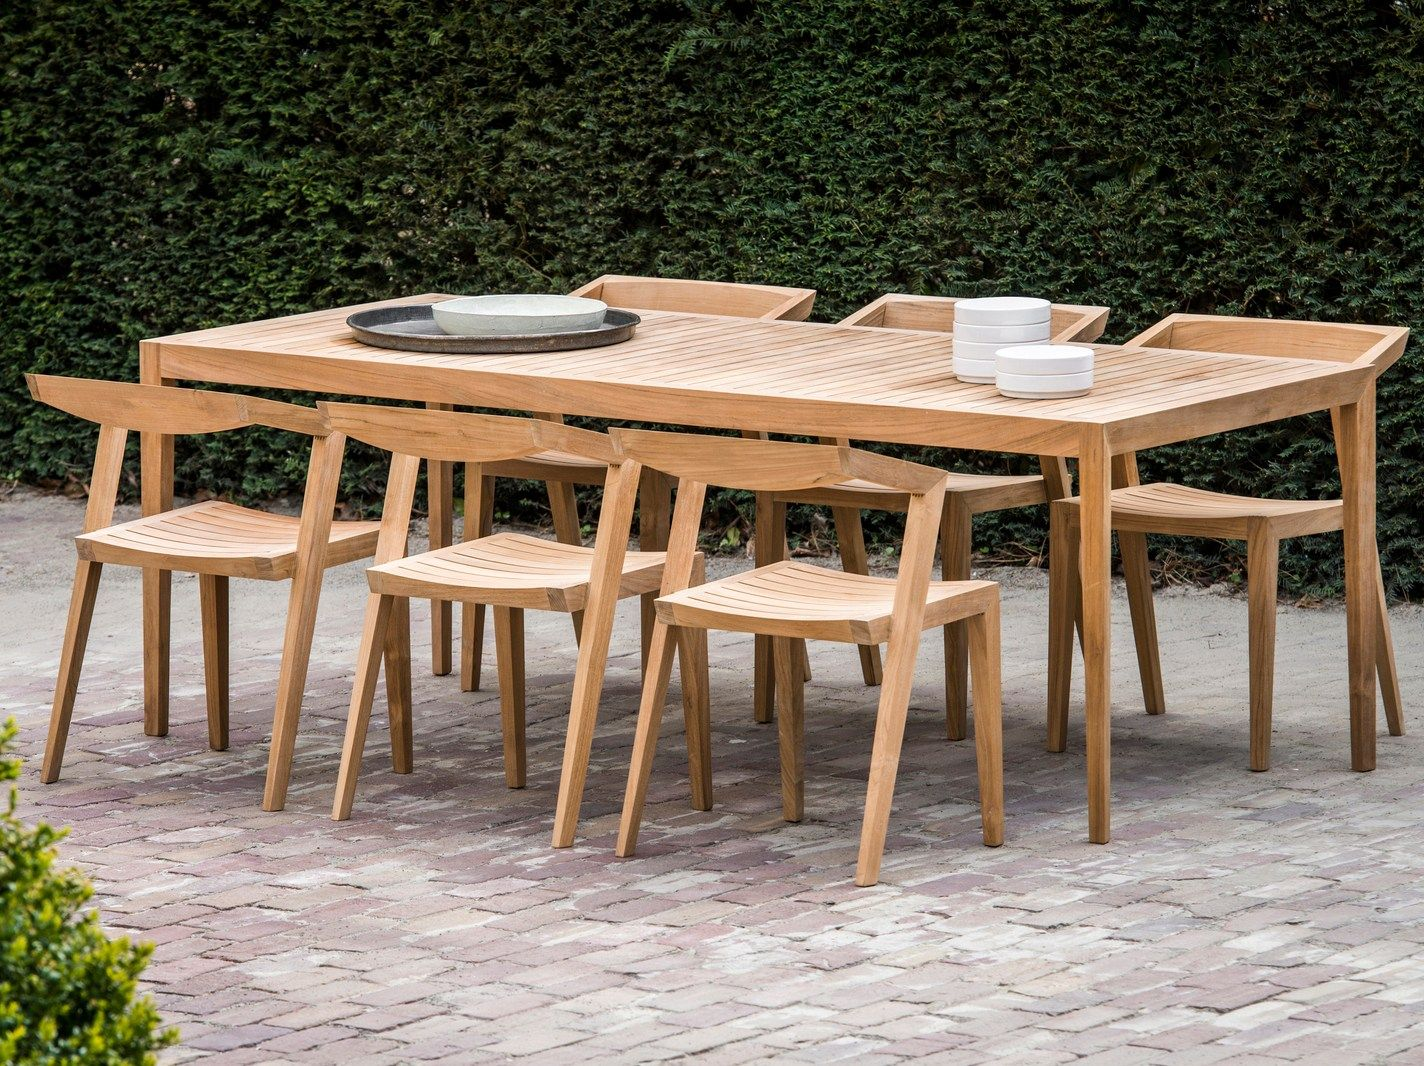 collection garden furniture accessories pictures. Rectangular Teak Garden Table URBAN Collection By Feelgood Designs Design Jakob Berg Furniture Accessories Pictures I